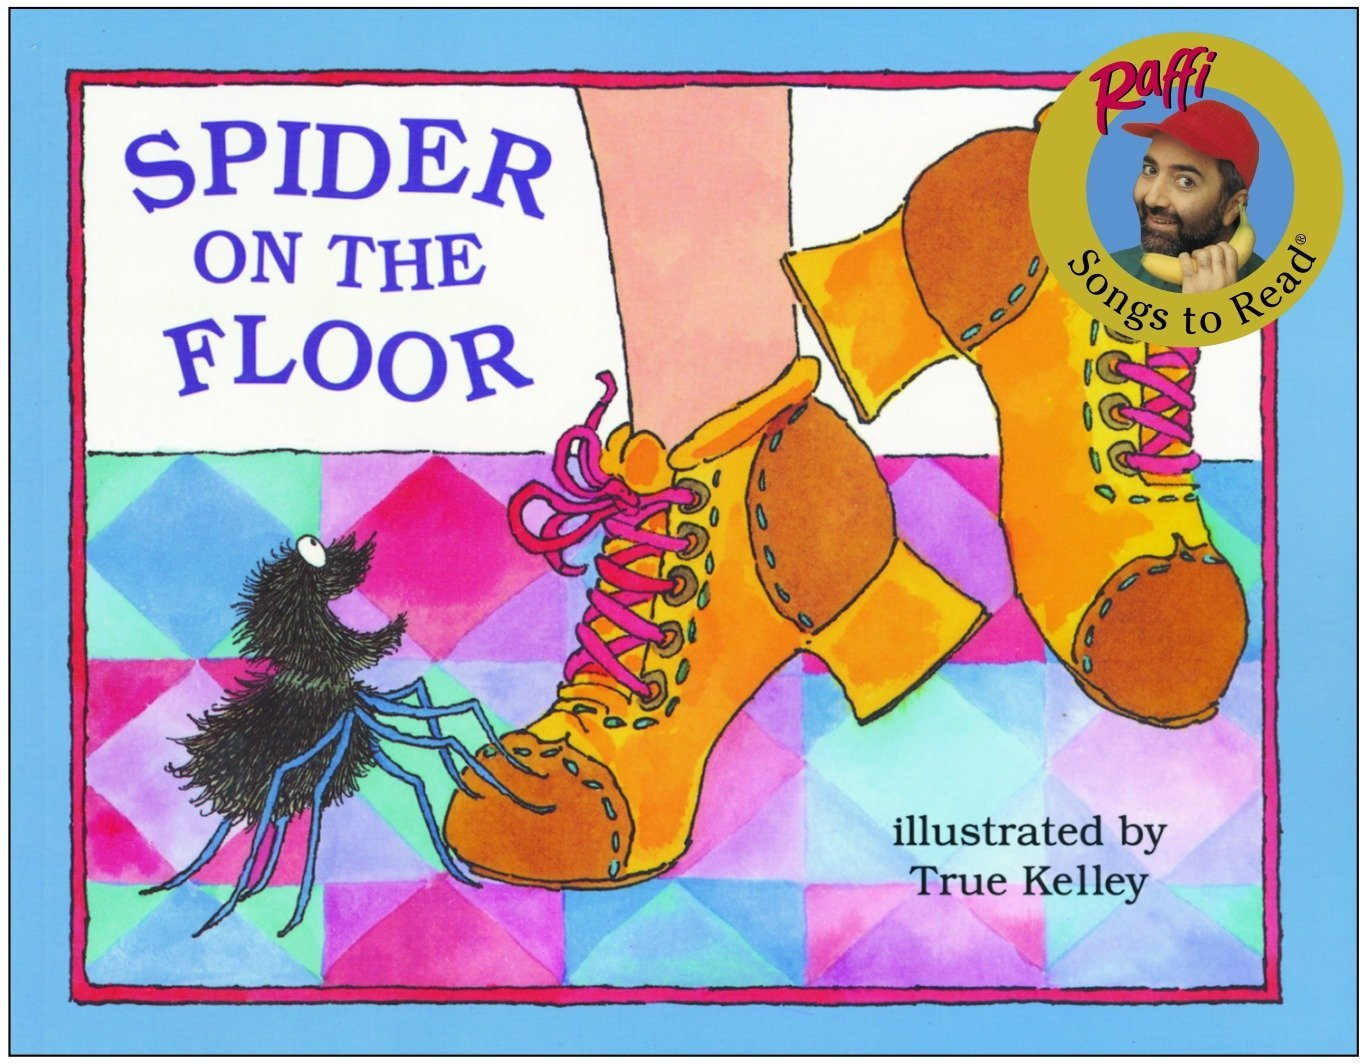 Spider On The Floor Songs To Read Amazon Co Uk Raffi Kelley True Books